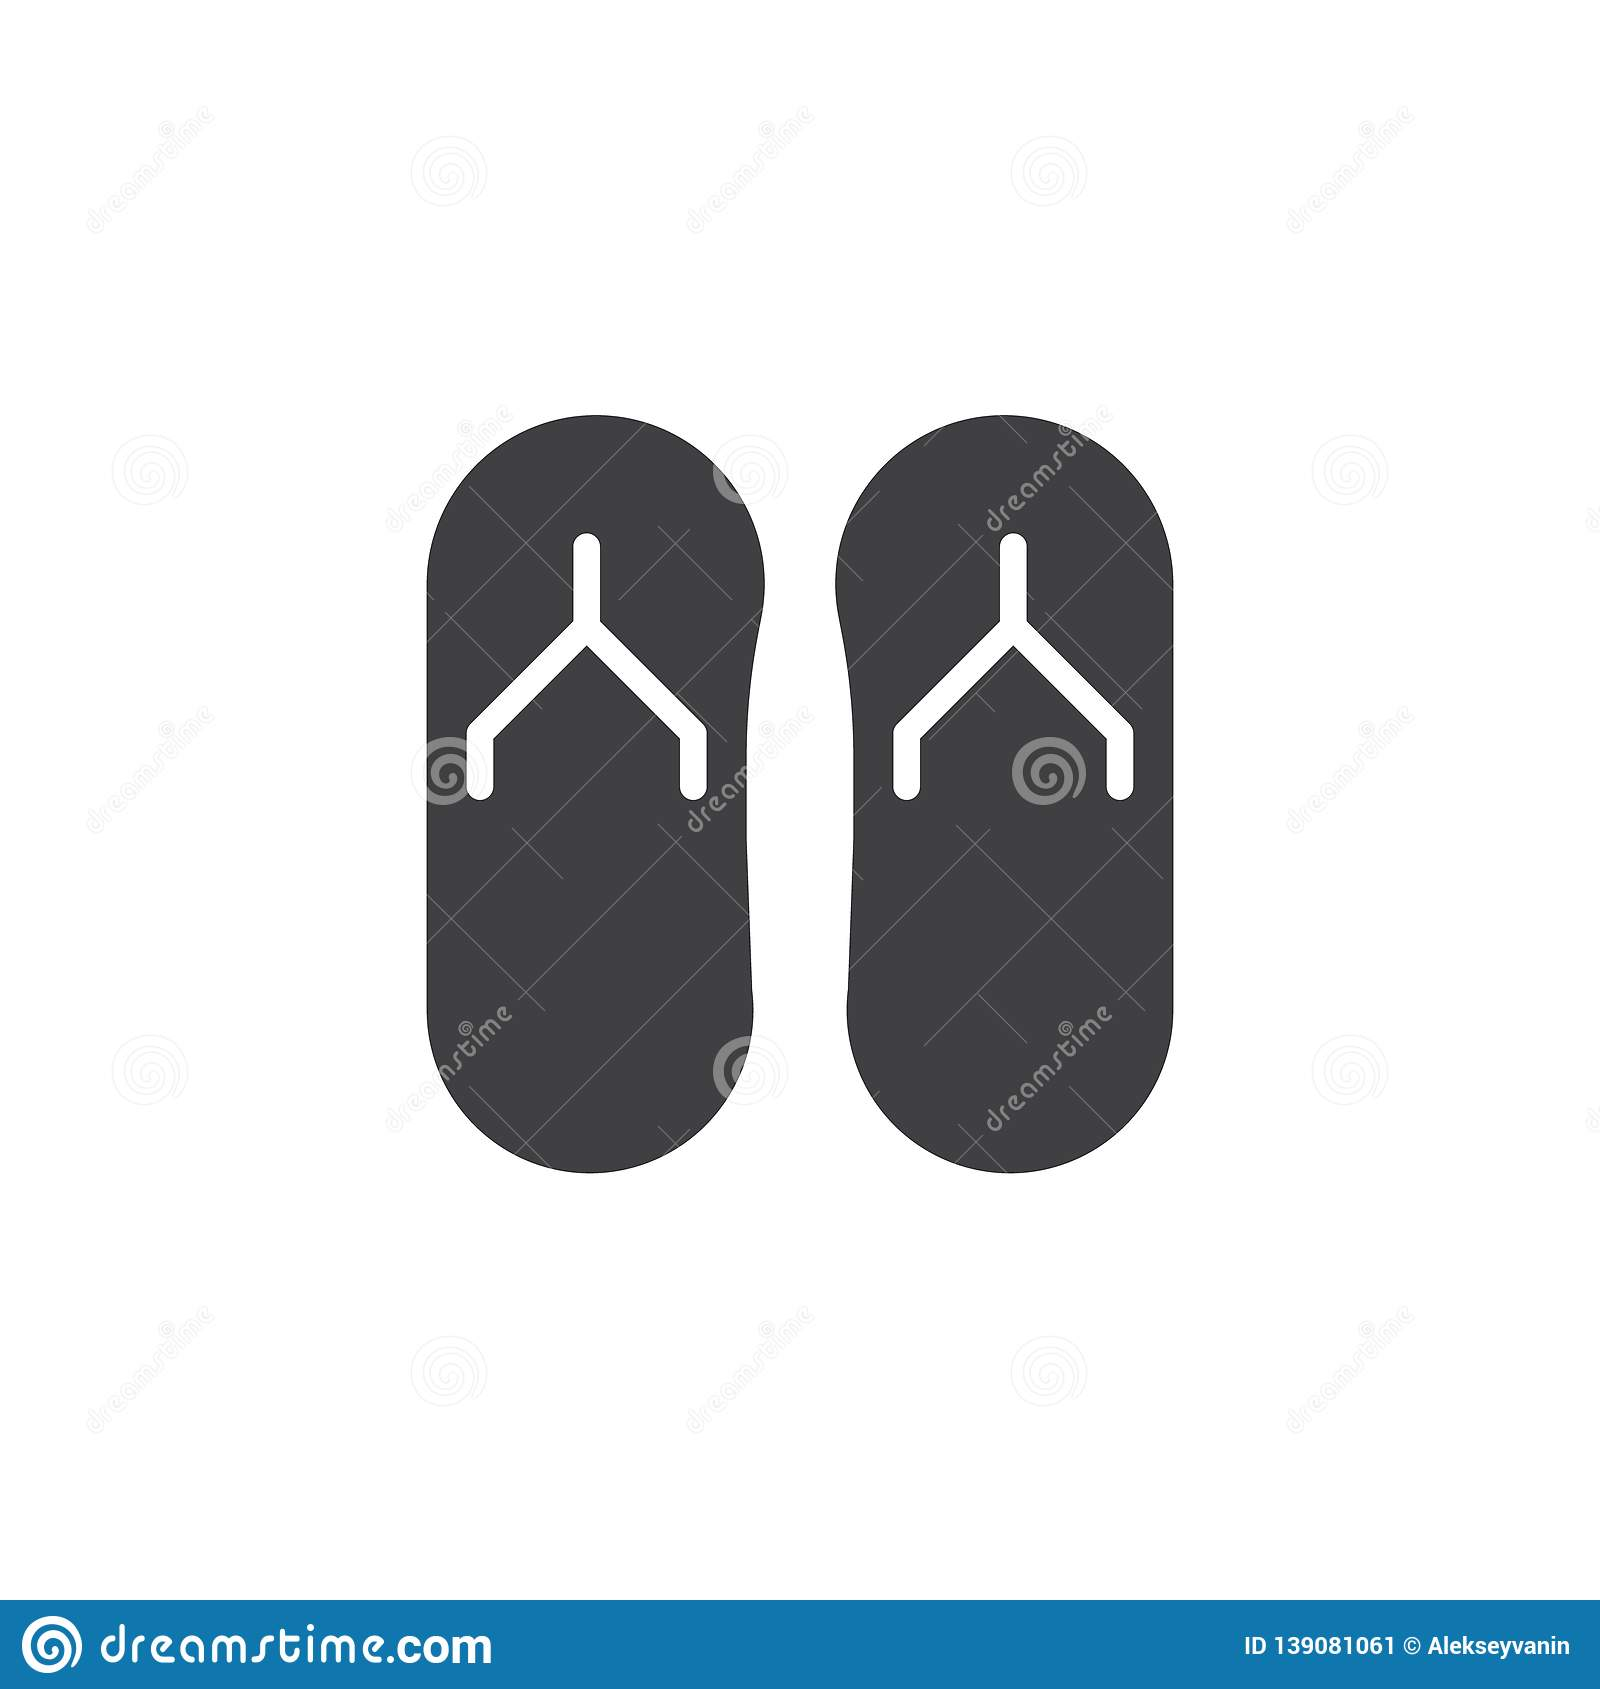 4806a8149773 Flip flops vector icon. filled flat sign for mobile concept and web design.  Summer slippers simple solid icon. Beach sandals symbol